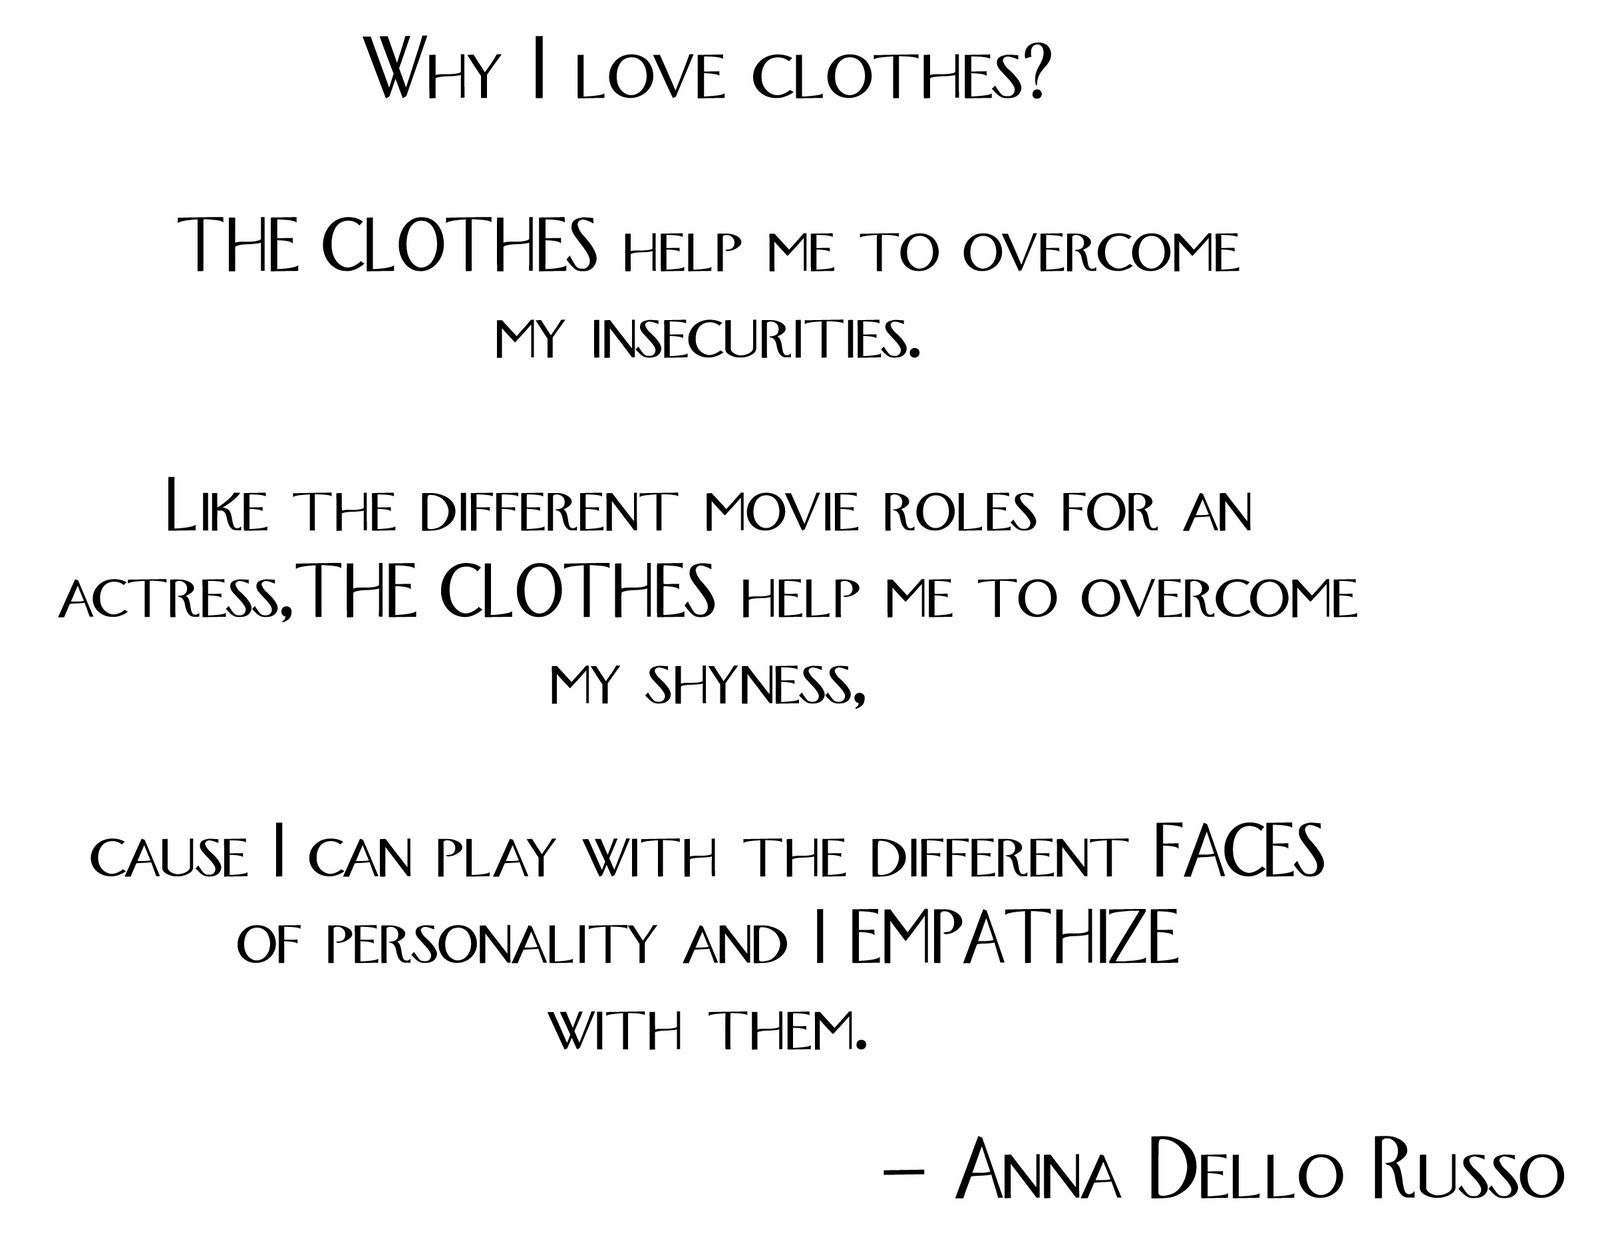 Charmant Why Do You Love Clothes? #divarockerglam #clothes #fashion #style #quotes